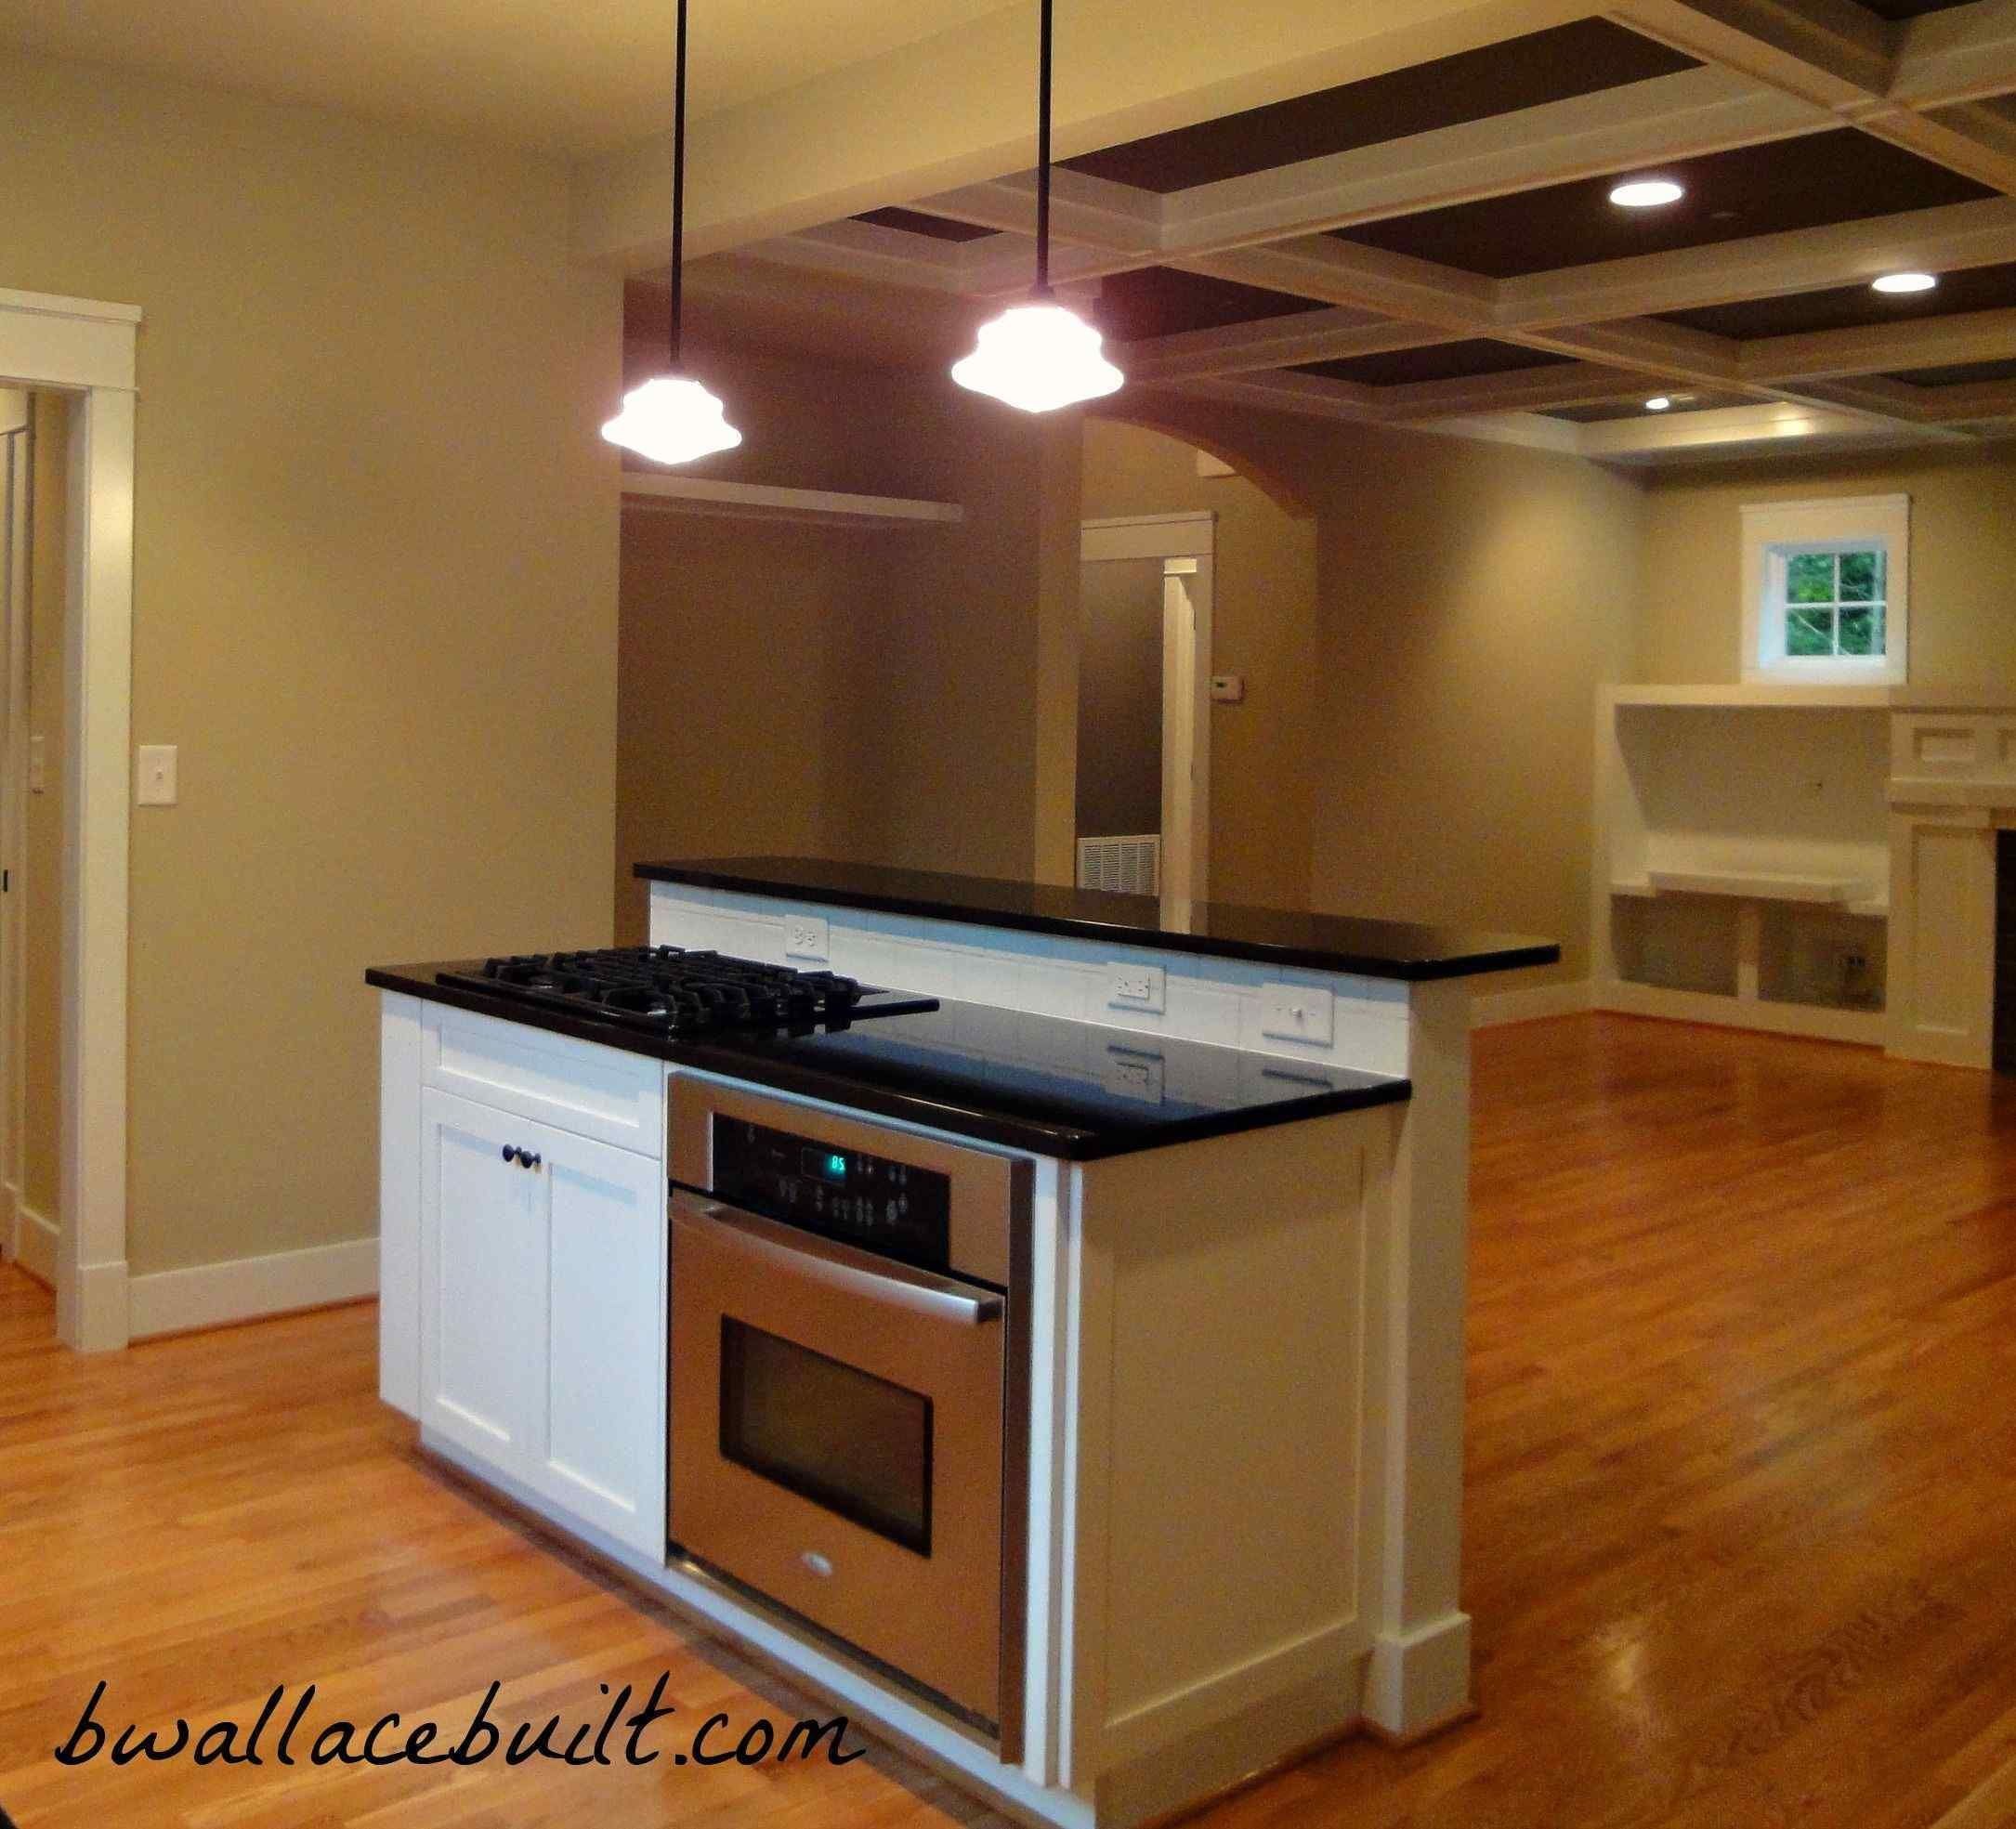 52+What Has To Be Done About Vaulted Ceiling Kitchen